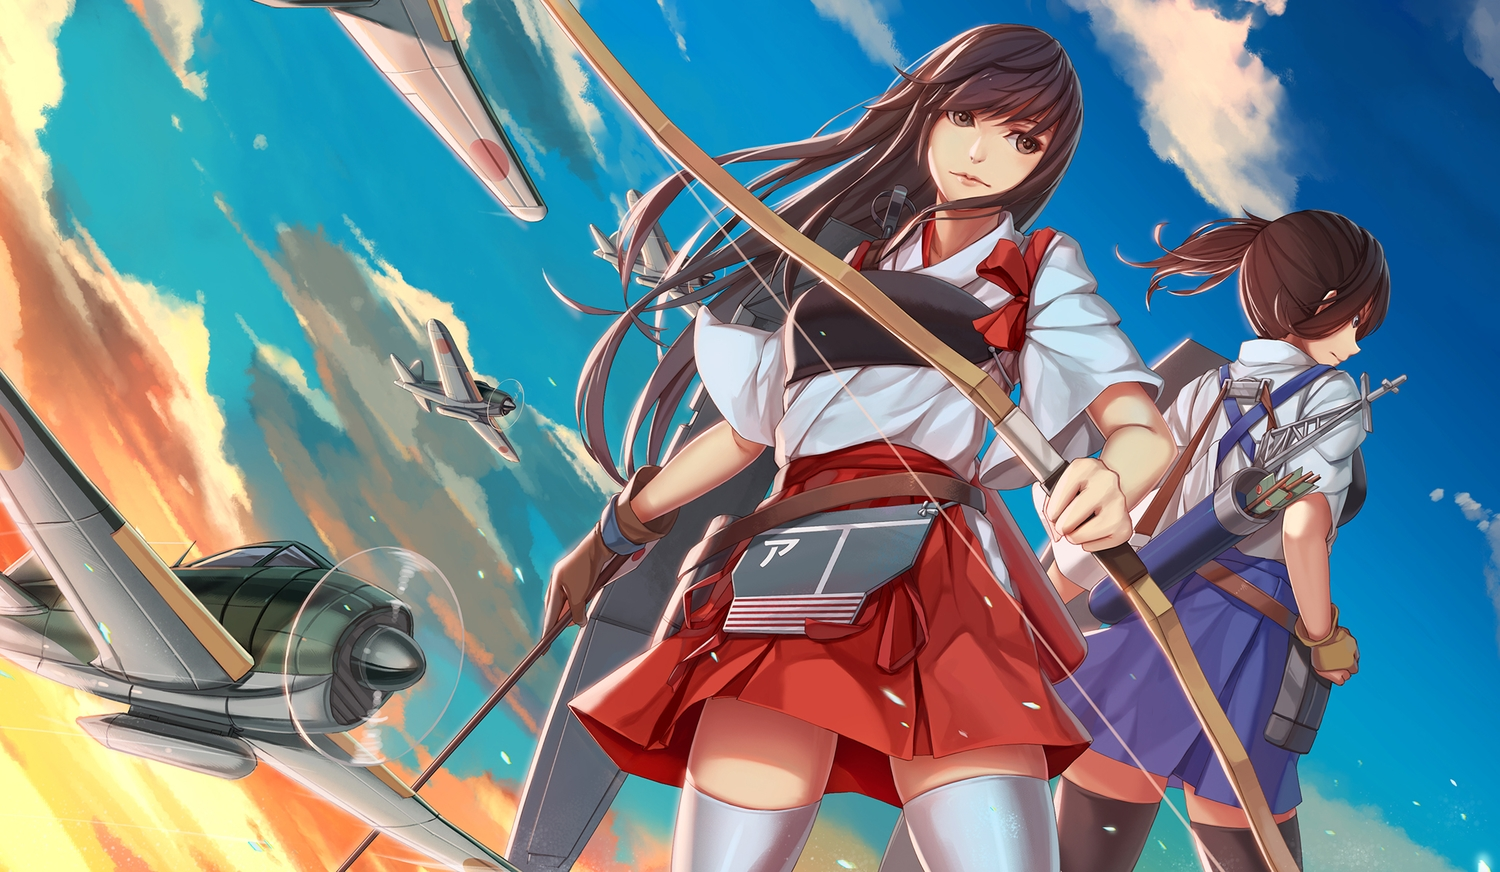 2girls aircraft akagi_(kancolle) anthropomorphism bow_(weapon) brown_hair clouds gloves japanese_clothes kaga_(kancolle) kantai_collection nian ponytail skirt thighhighs weapon